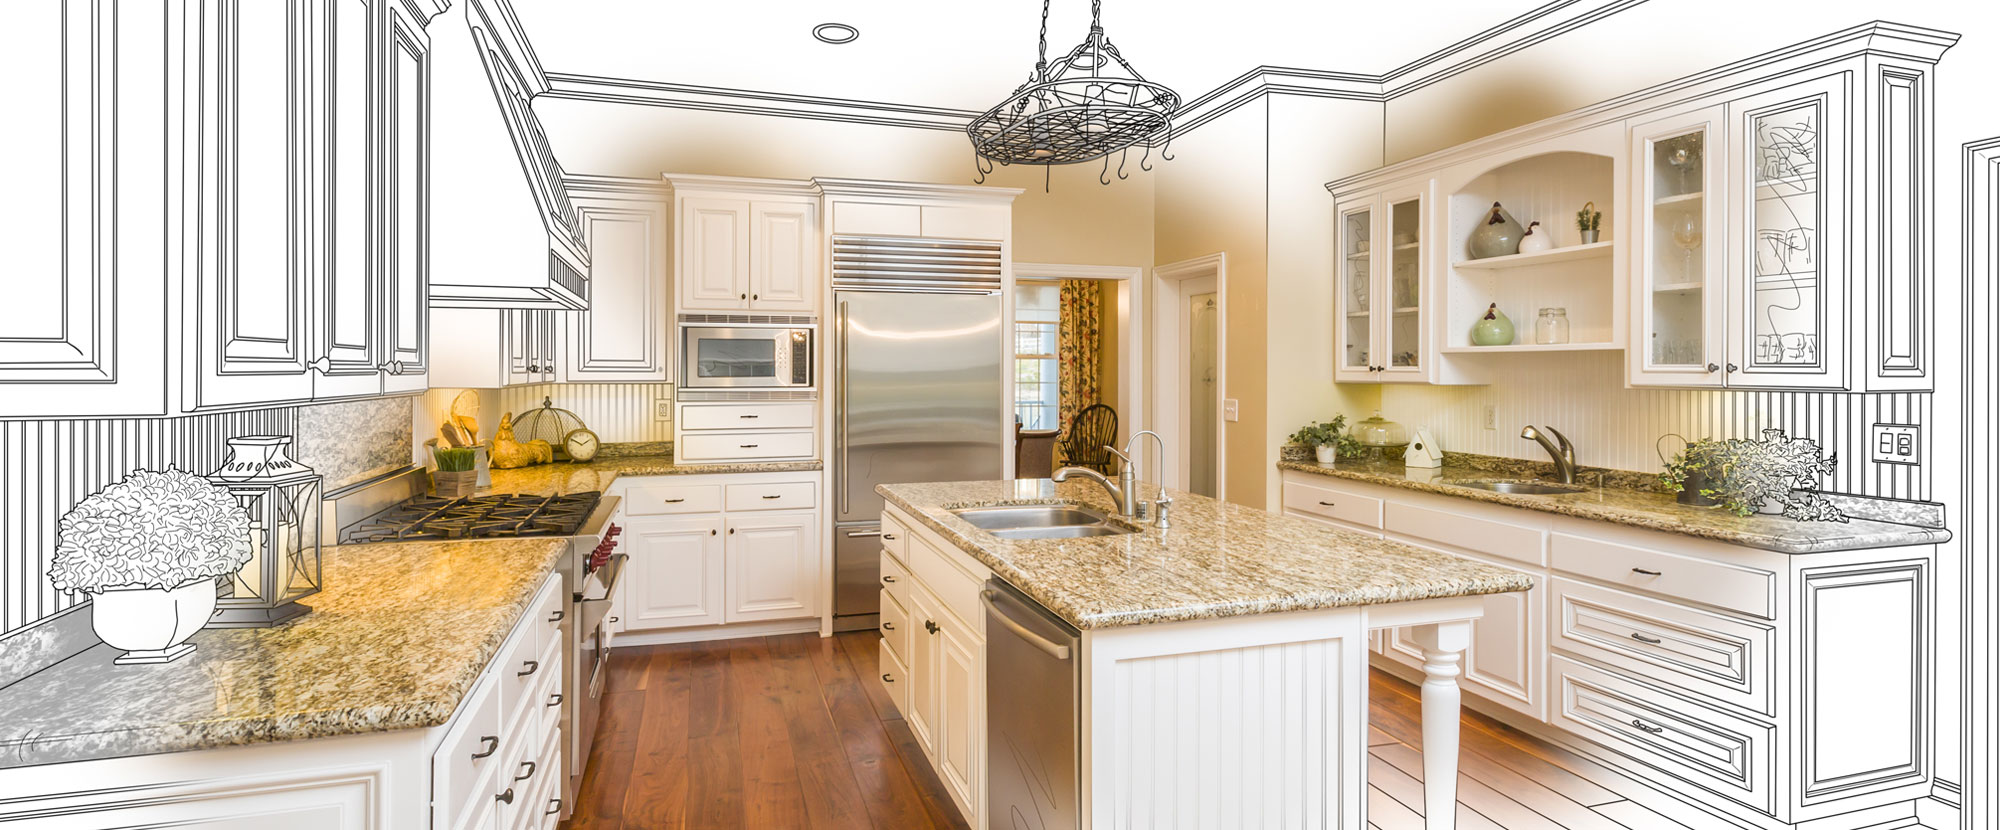 Remodeling Contractor, Custom Woodworking: Nutley & East